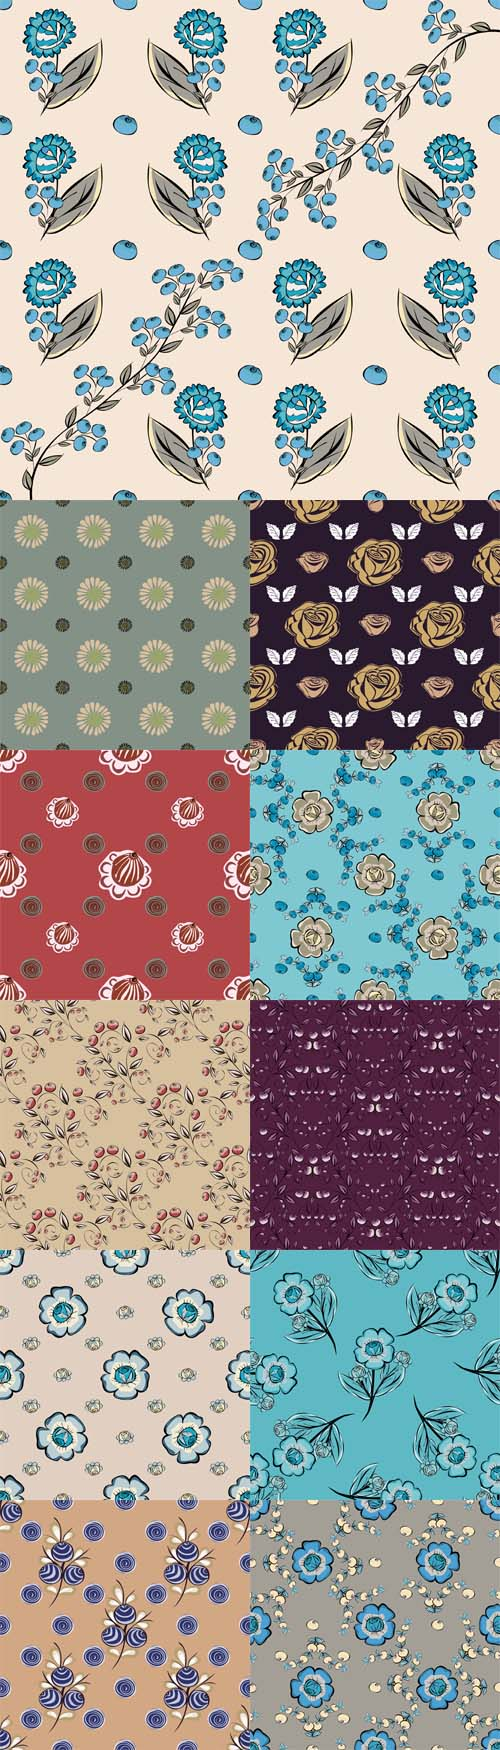 Vector Abstract Flowers Seamless Pattern Backgrounds